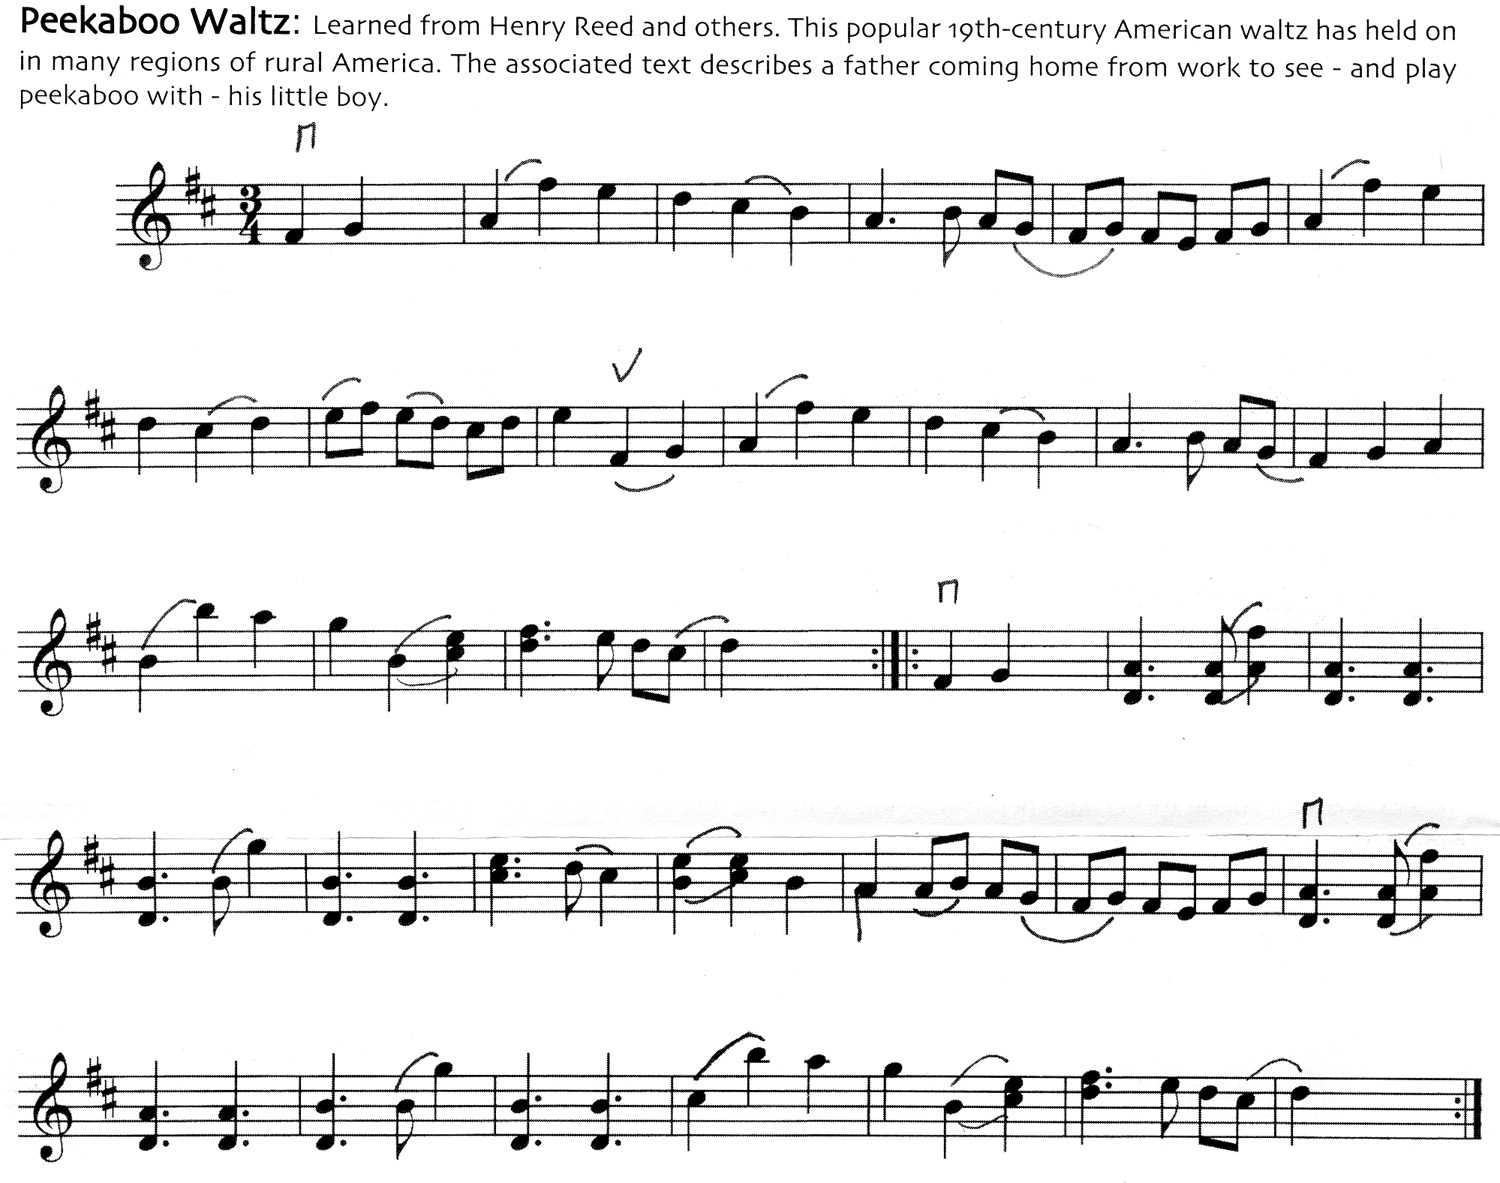 Notes for Peekaboo Waltz